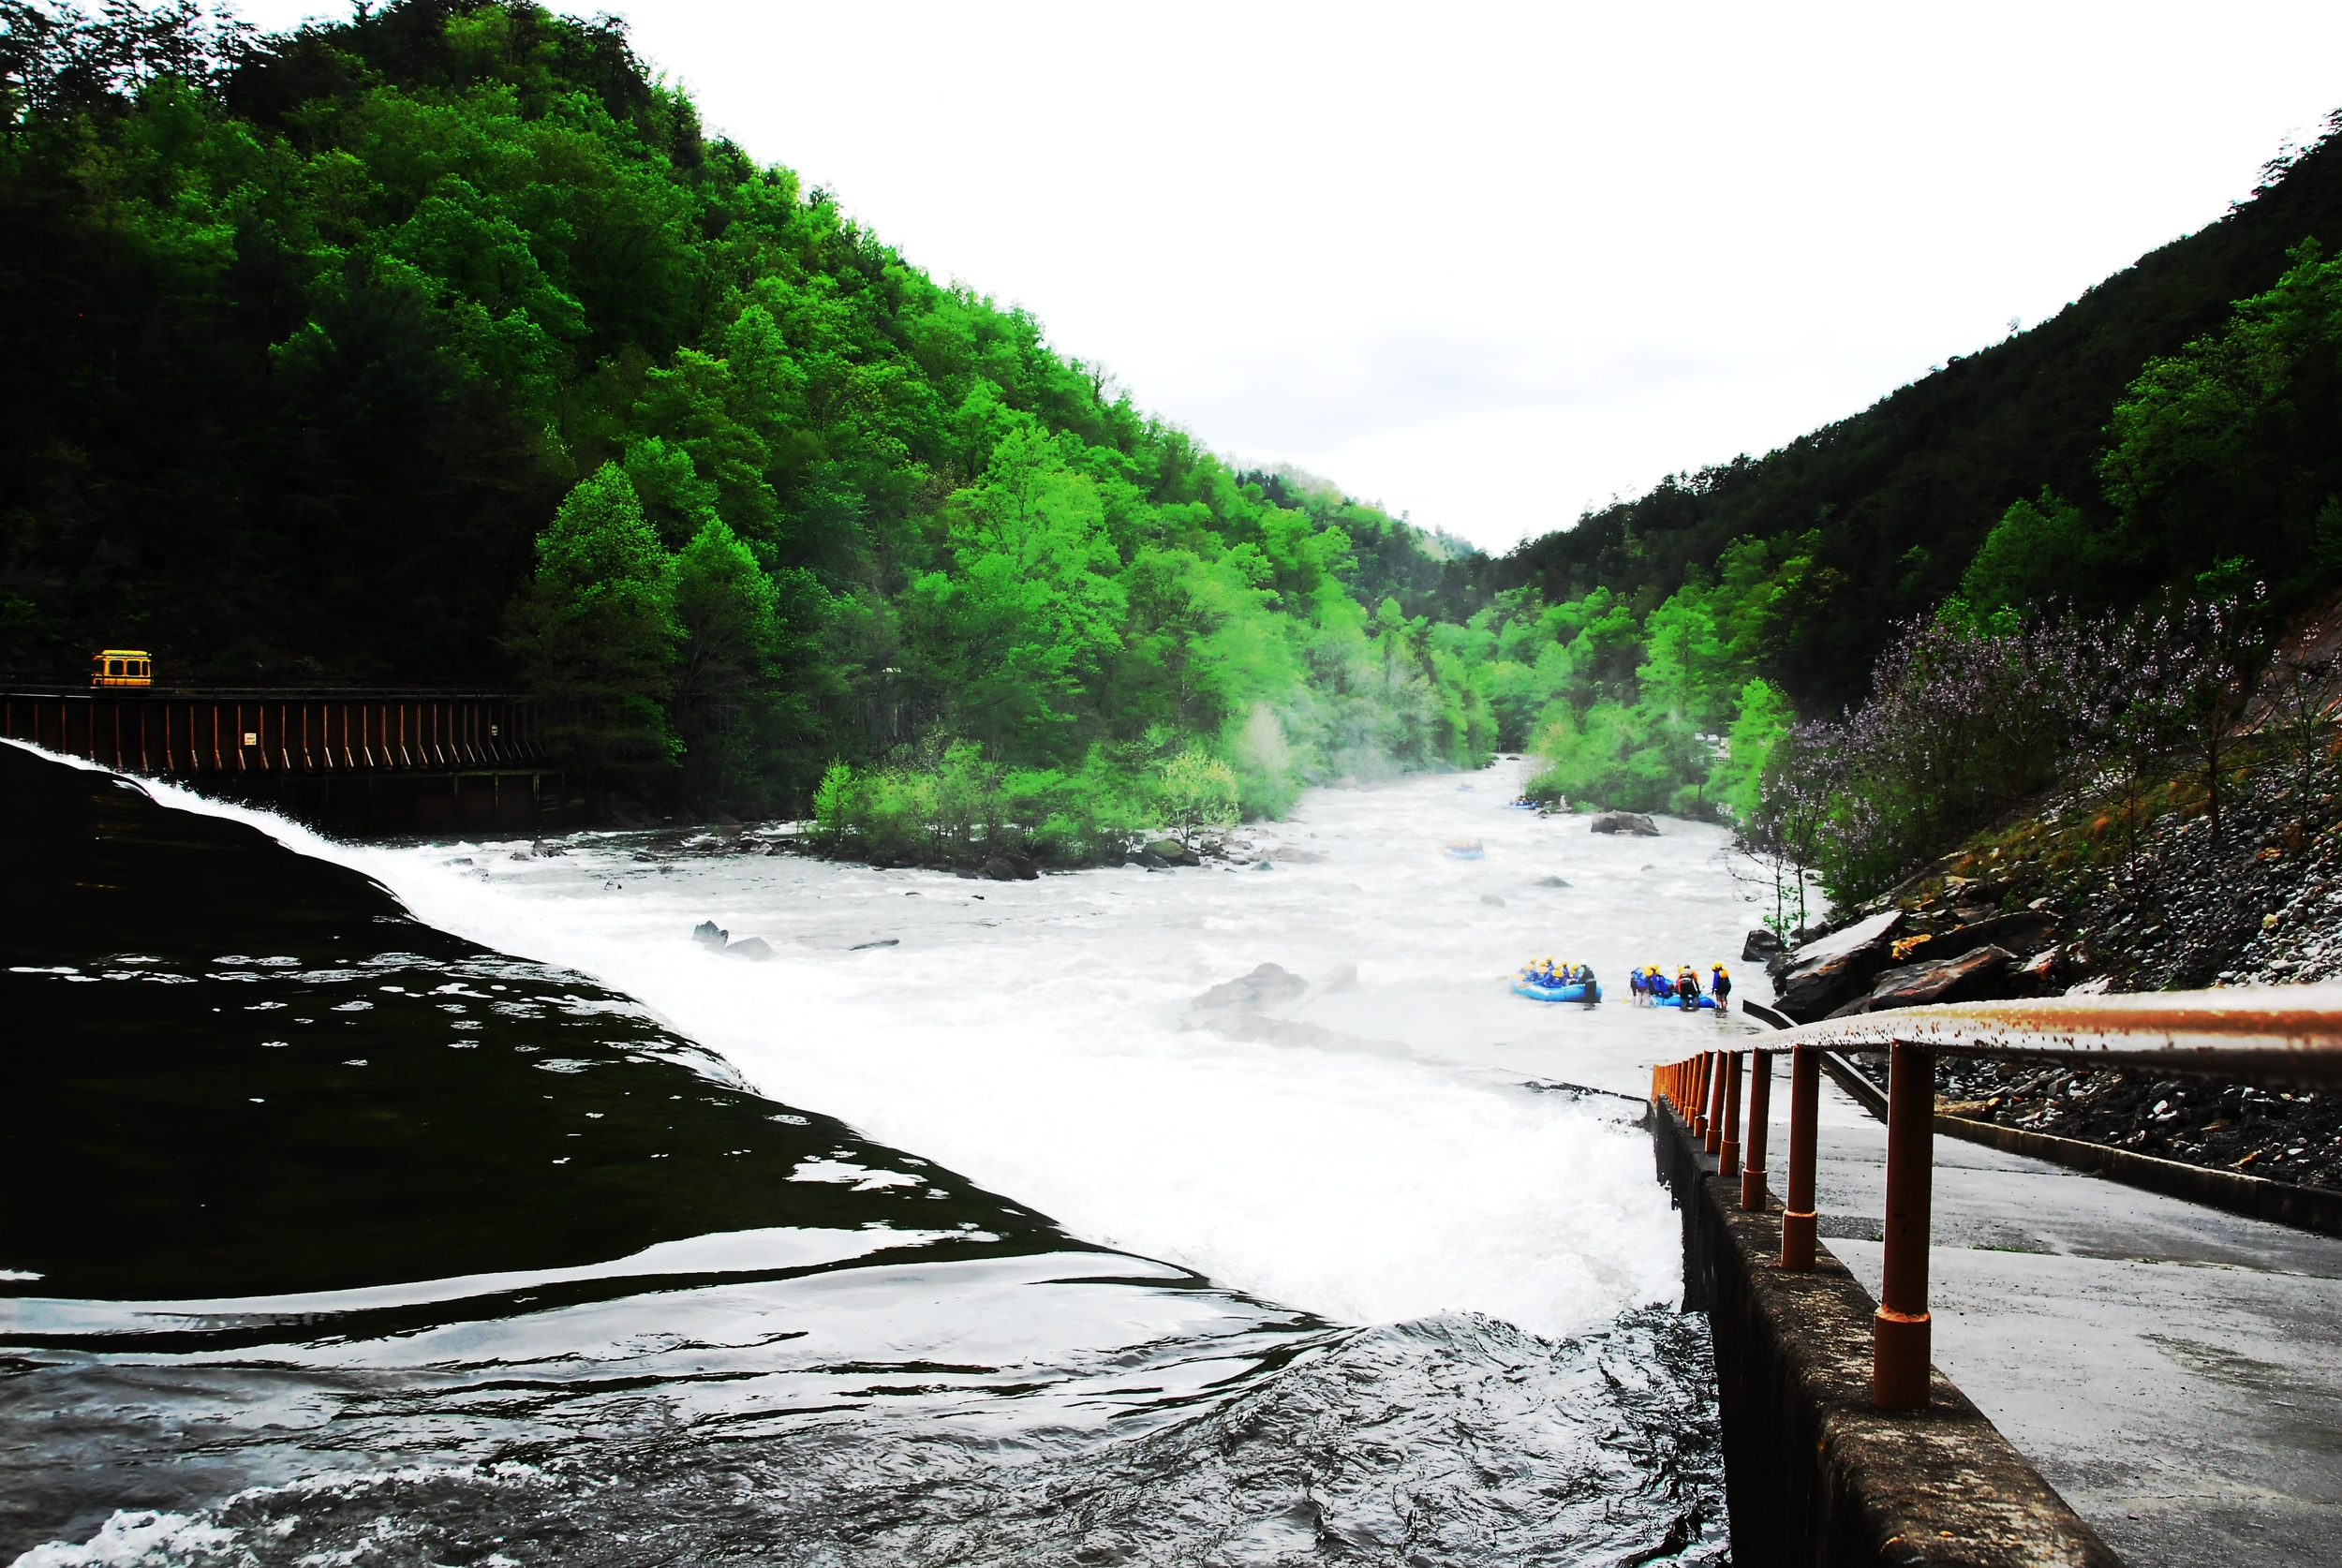 Overlooking the Middle Ocoee River Dam